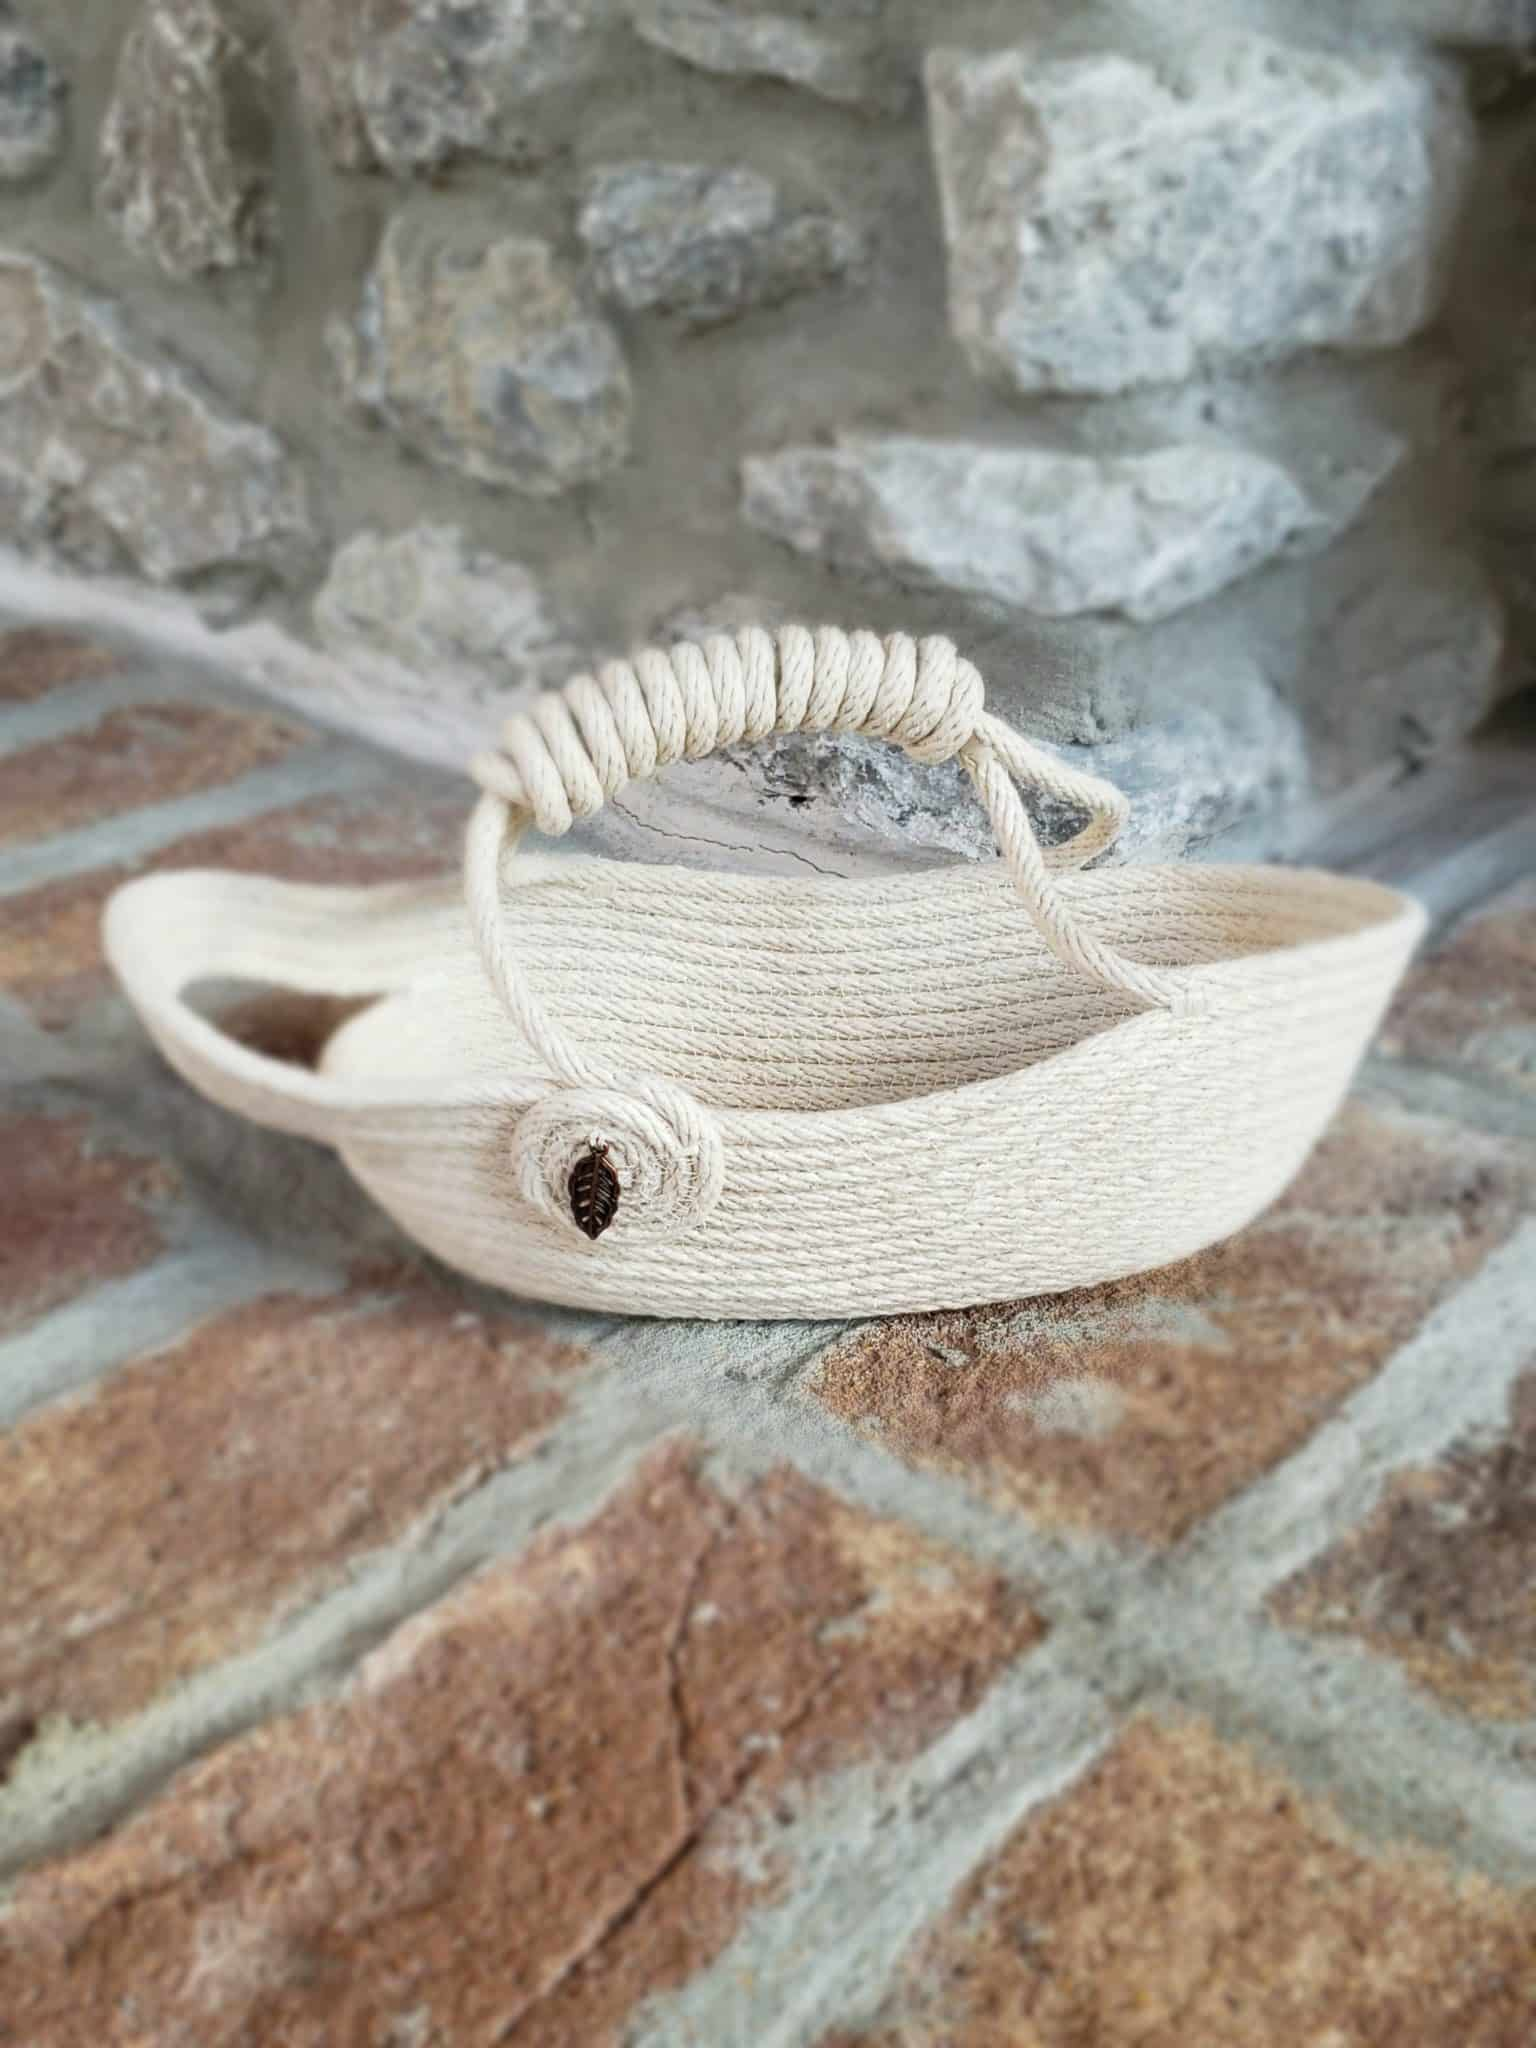 wine basket carrier ready to be filled with a bottle of wine as a gift for bff's birthday